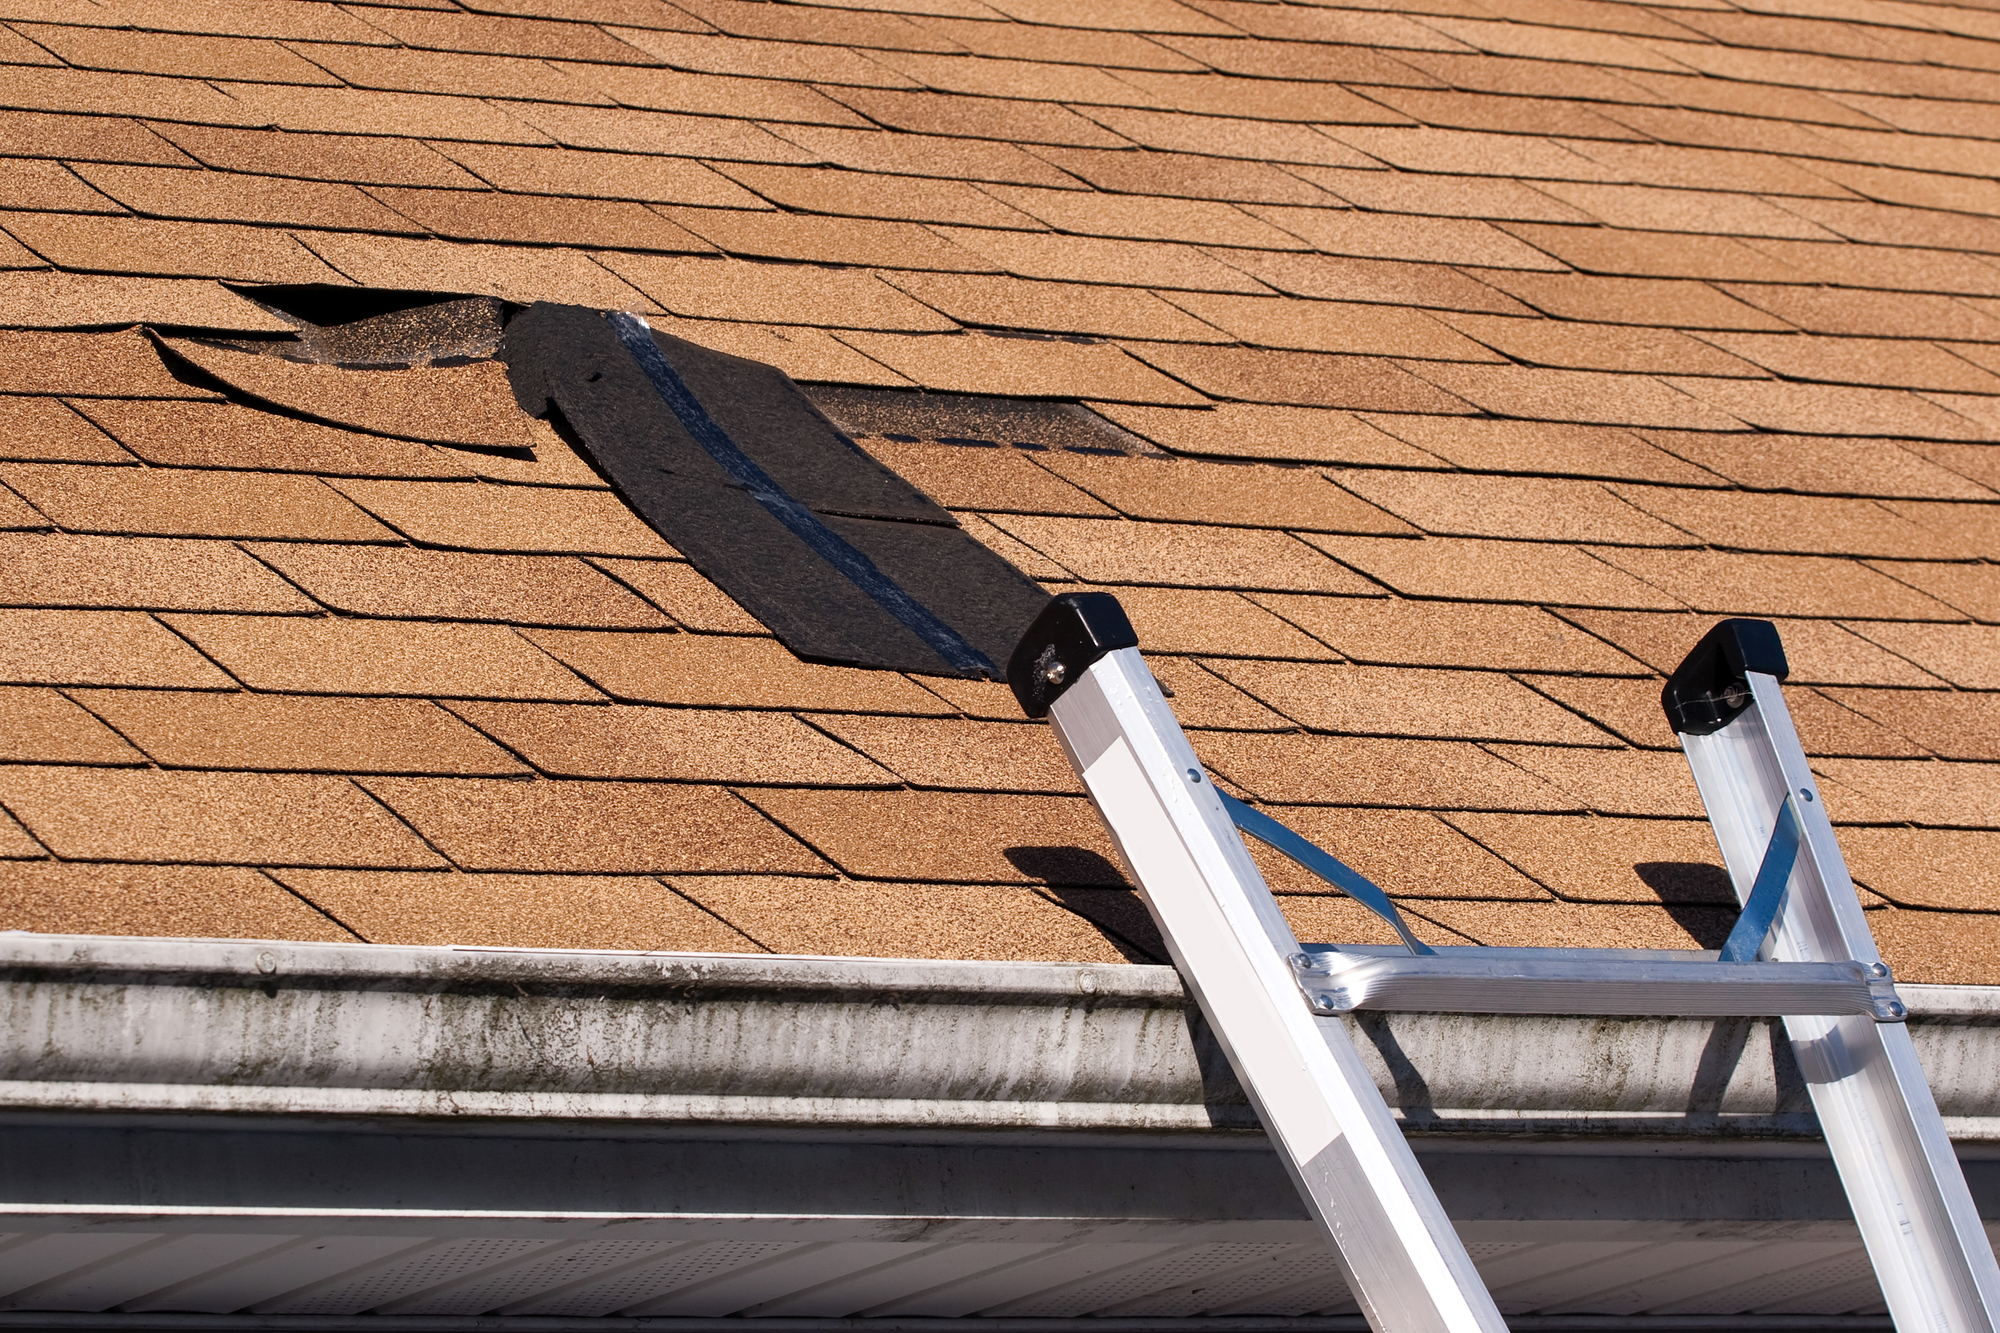 Attractive Local Roofing Company